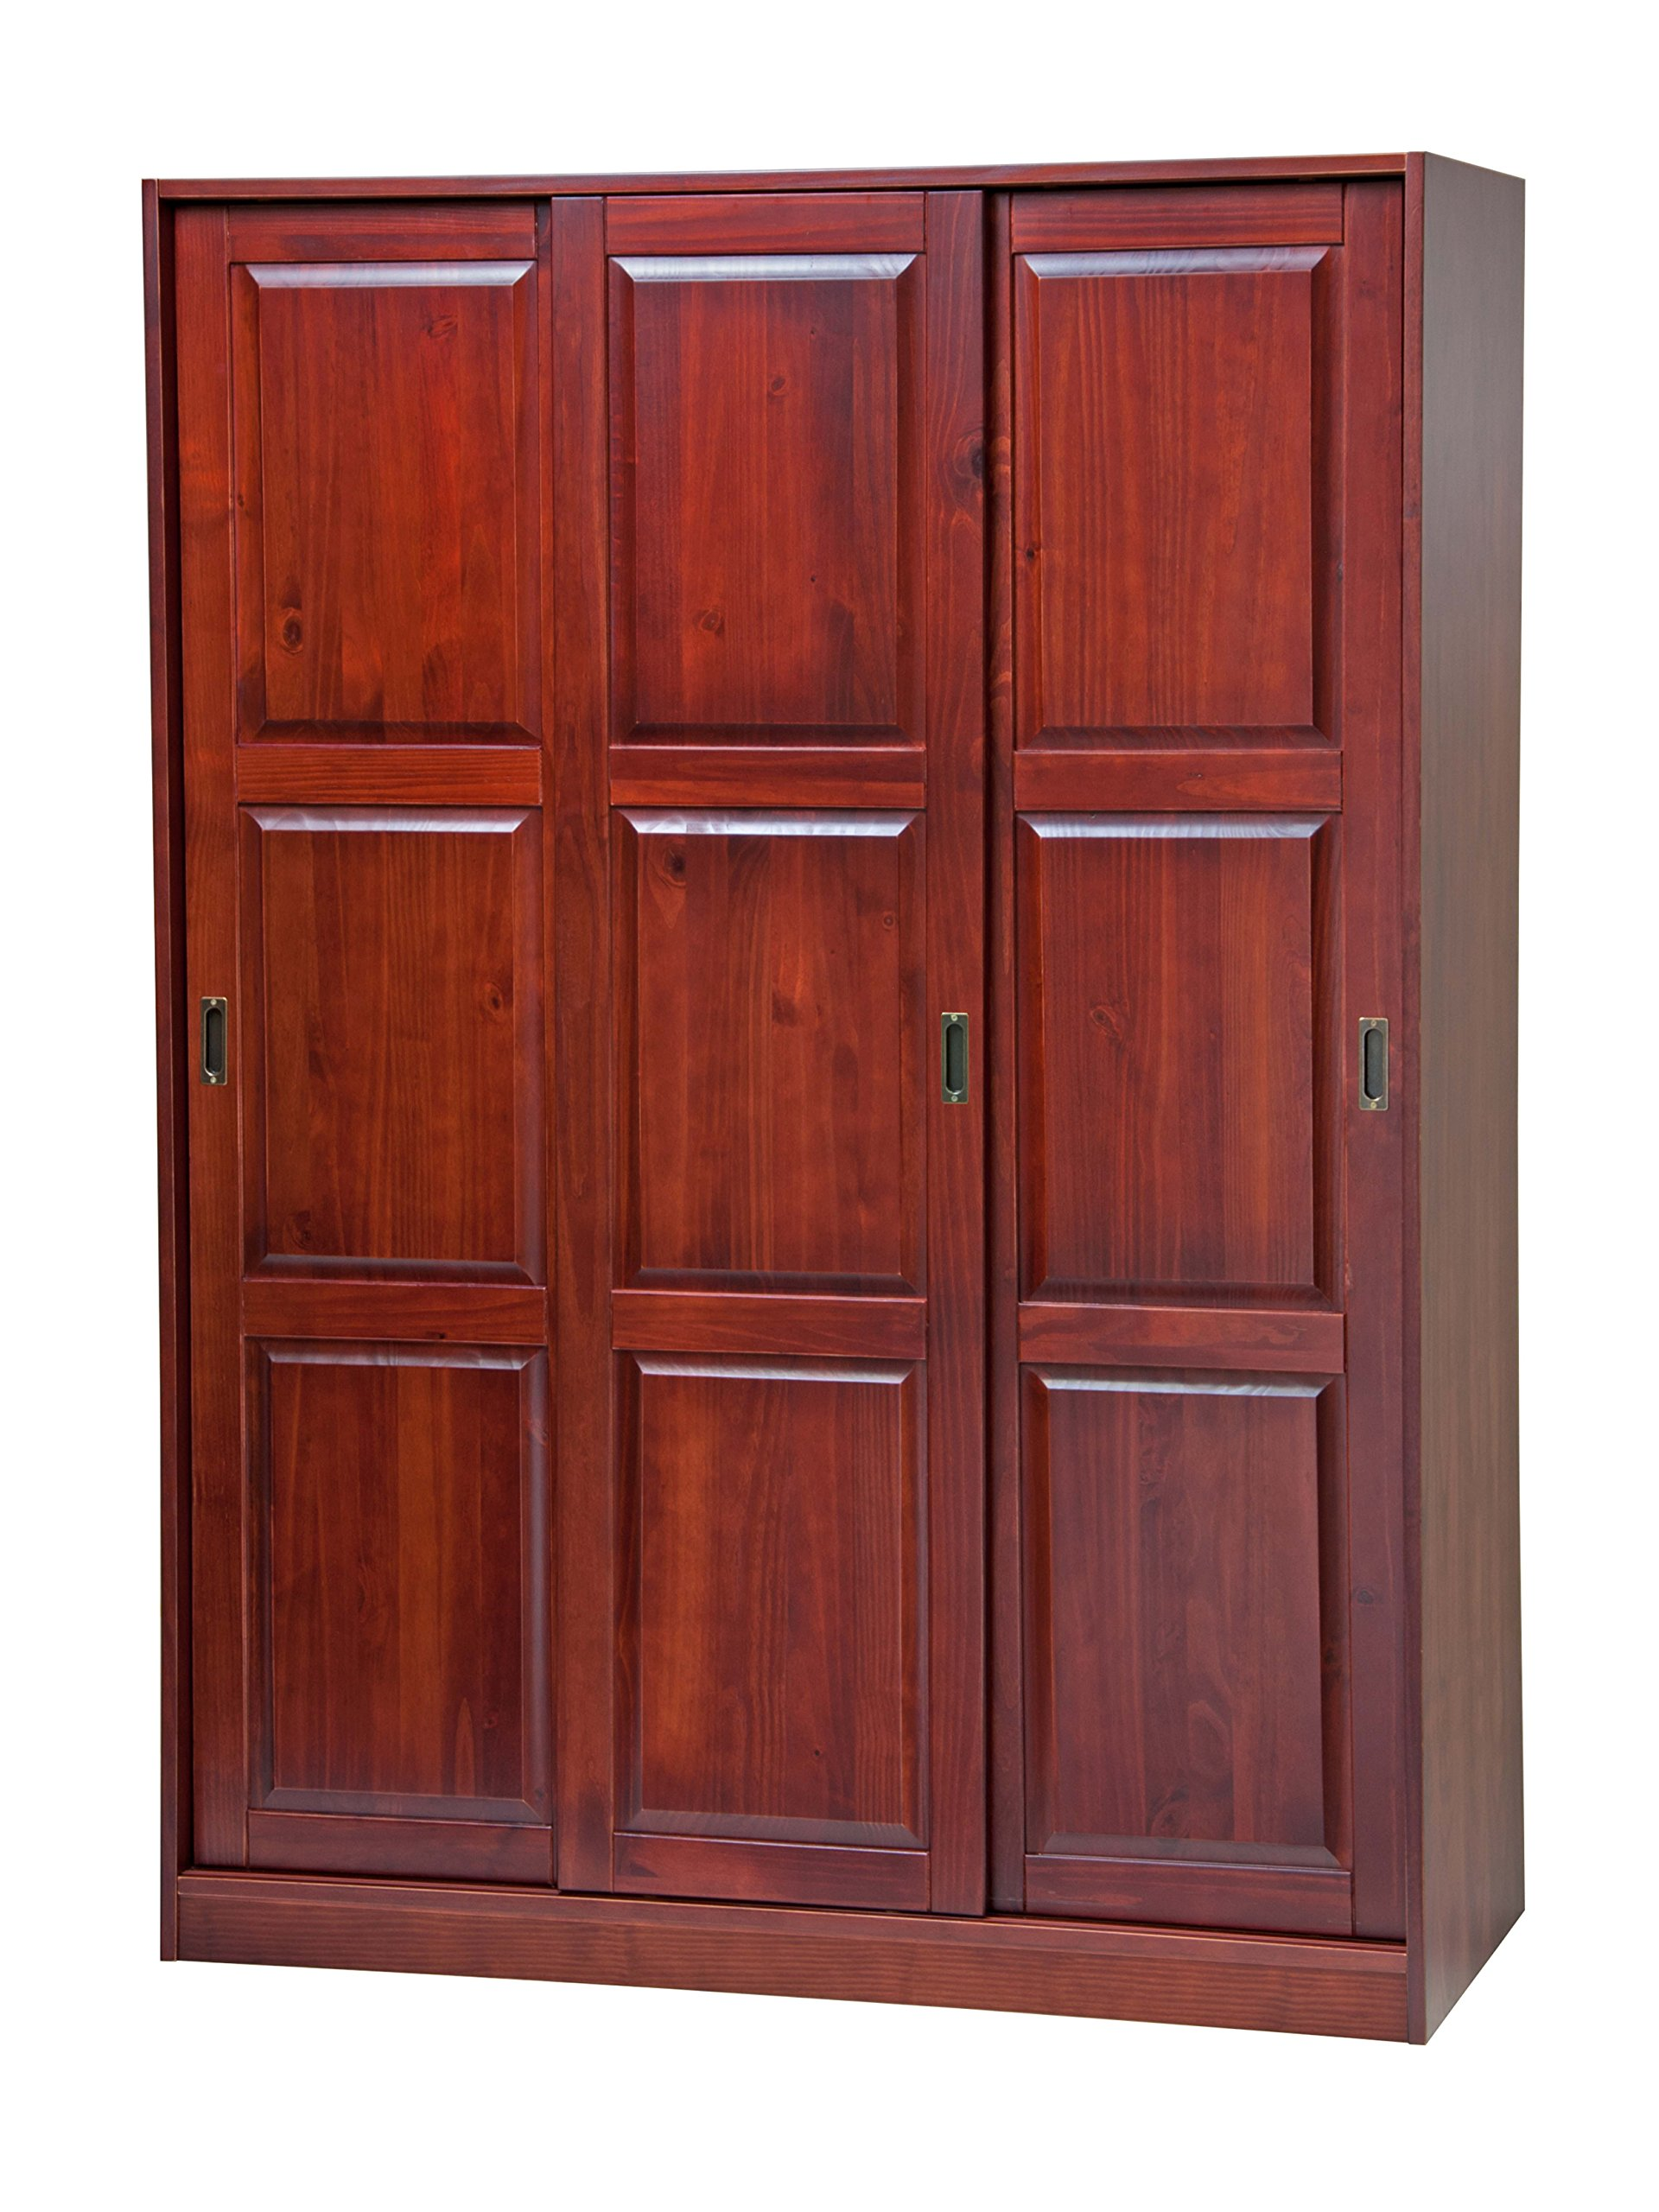 100% Solid Wood 3-Sliding Door Wardrobe/Armoire/Closet/Mudroom Storage by Palace Imports, Mahogany. 1 Large/4 Small Shelves. Extra Large Shelves Sold Separately. by Palace Imports